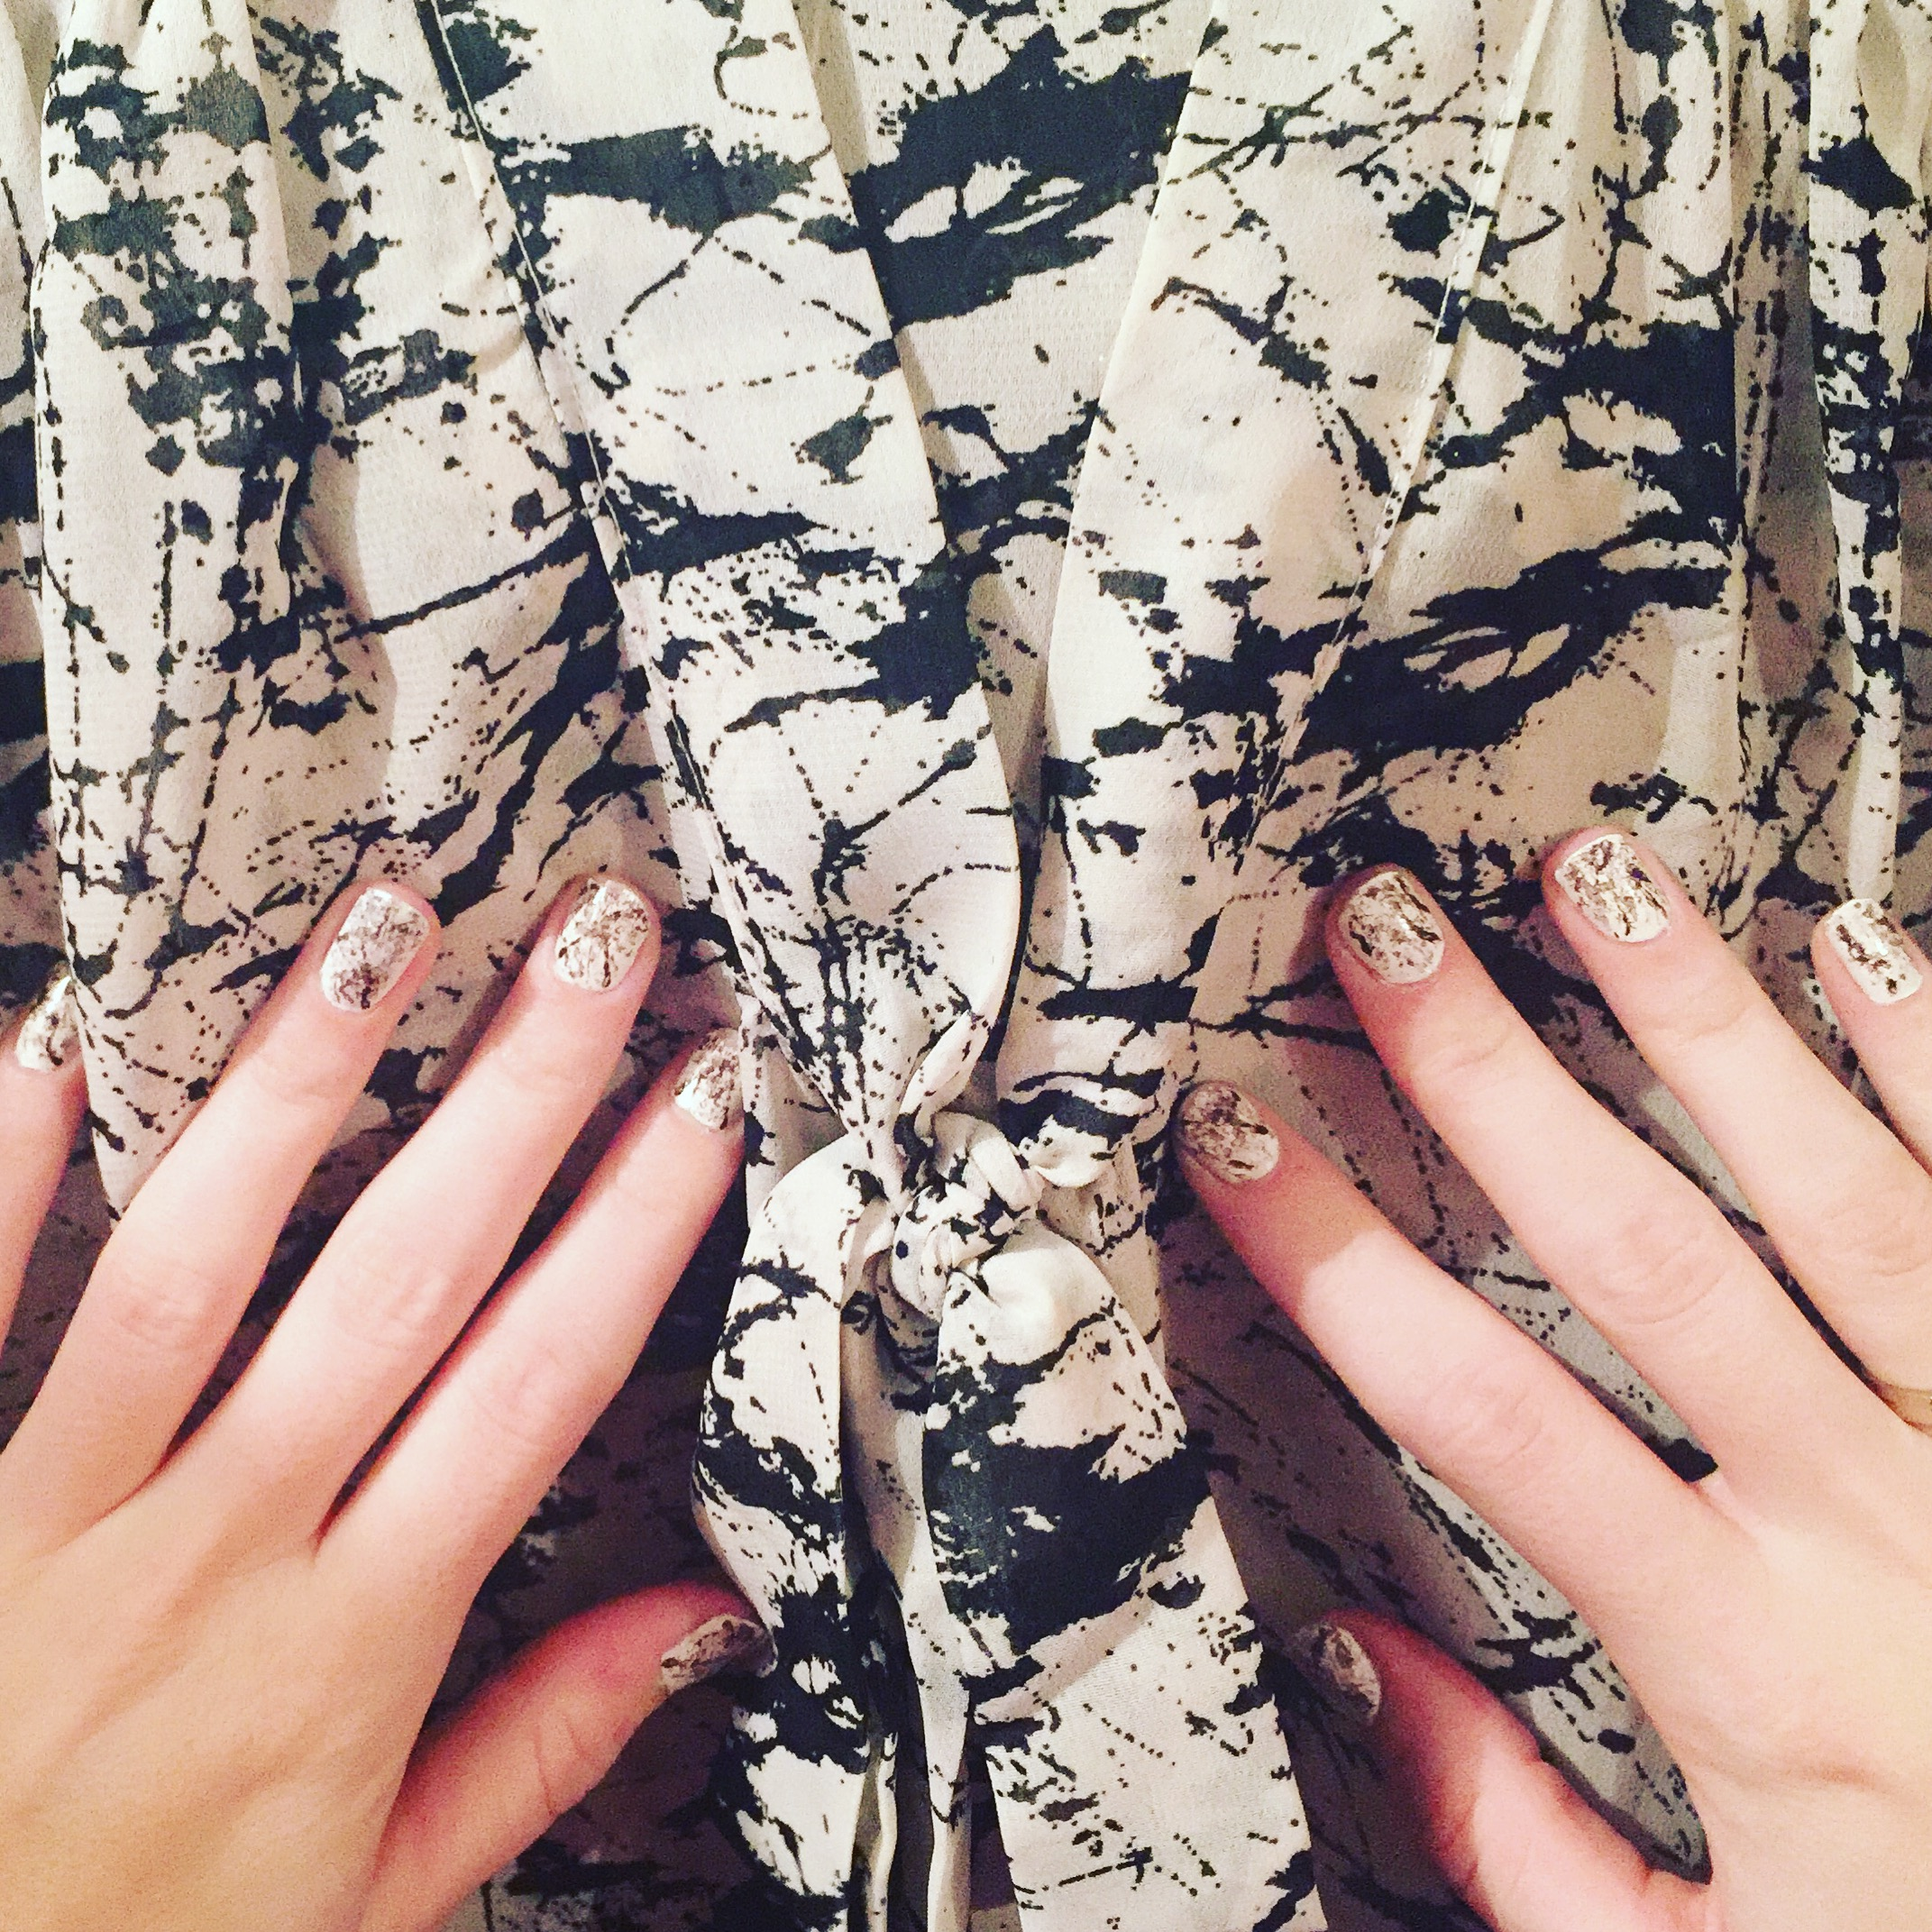 MARBLE-ous nails!